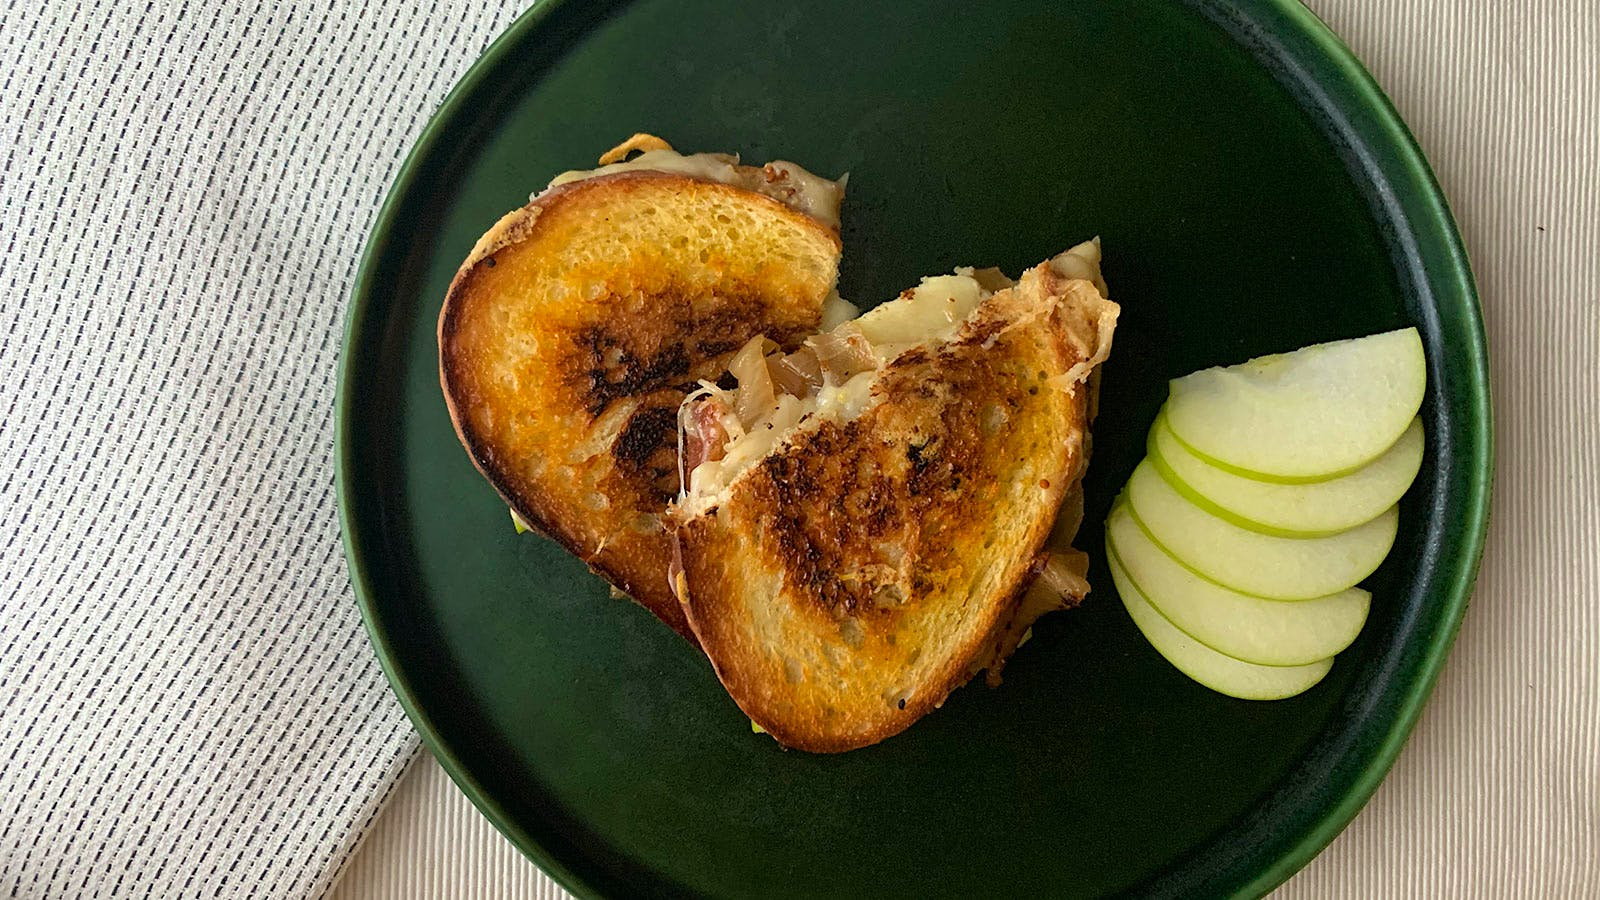 8 & $20: Dressed-Up Grilled Cheese with Caramelized Onions, Apples and Dijon